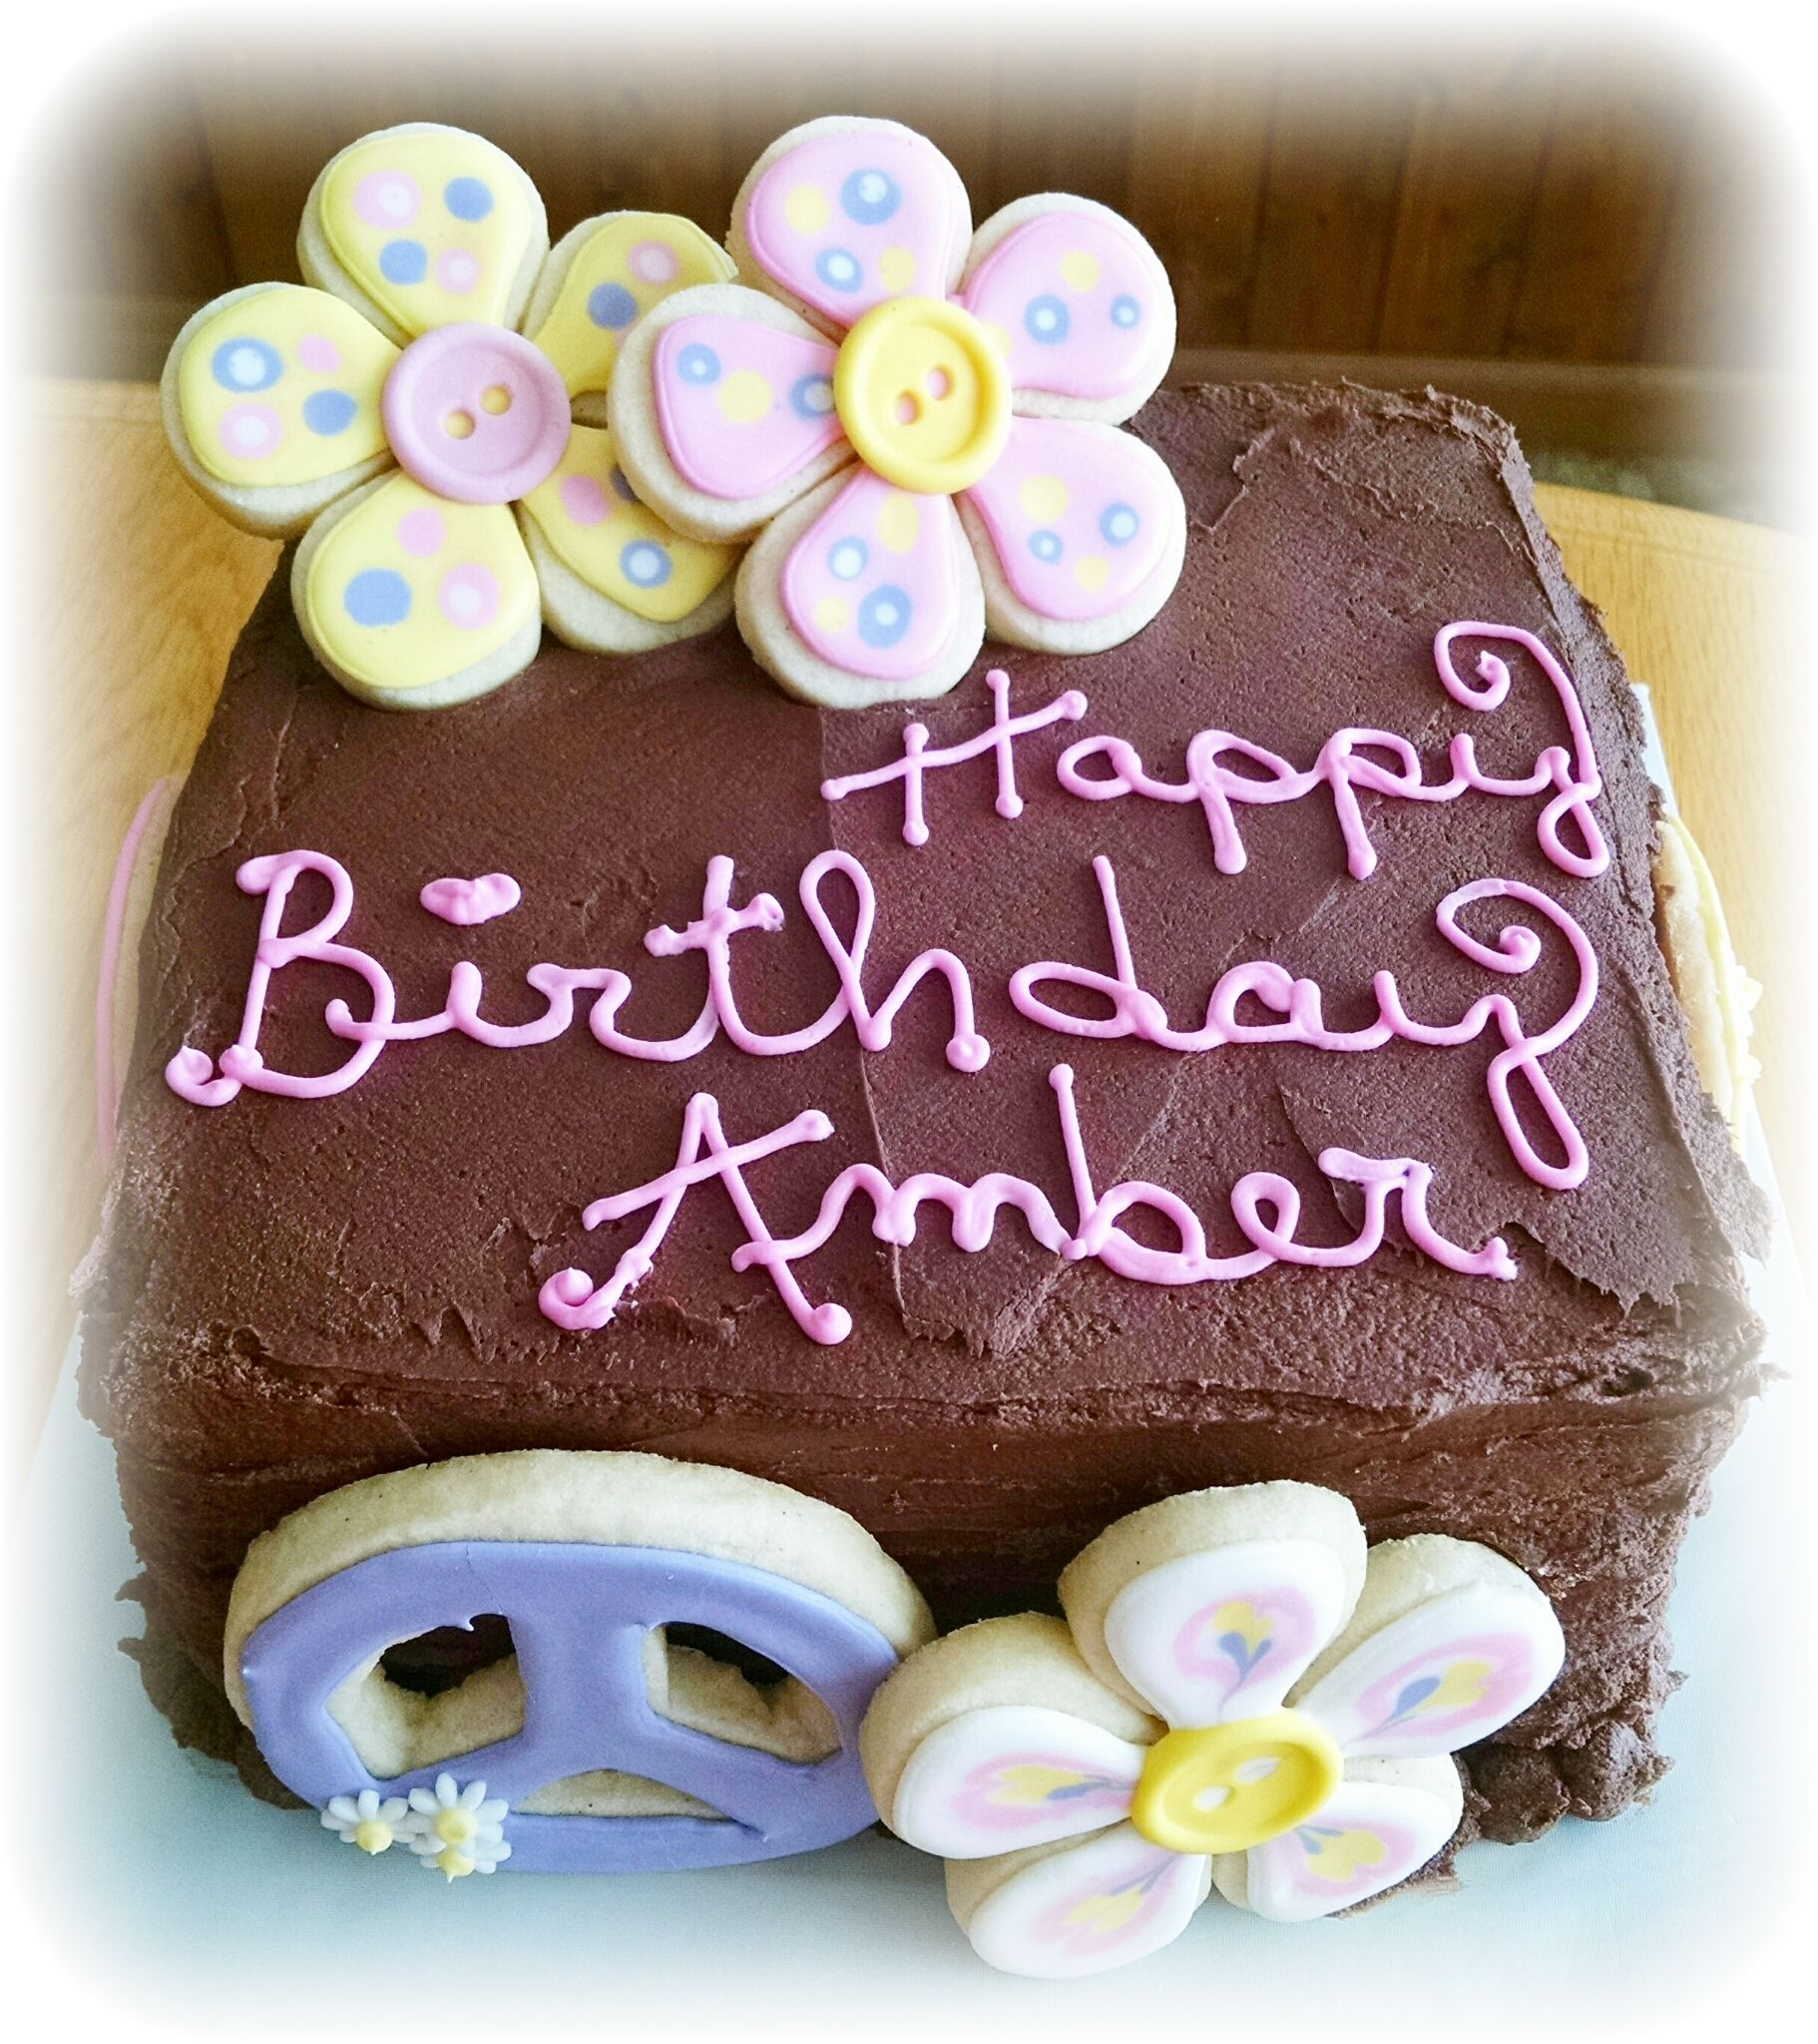 Happy Birthday cake with decorated cookies! Gourmet